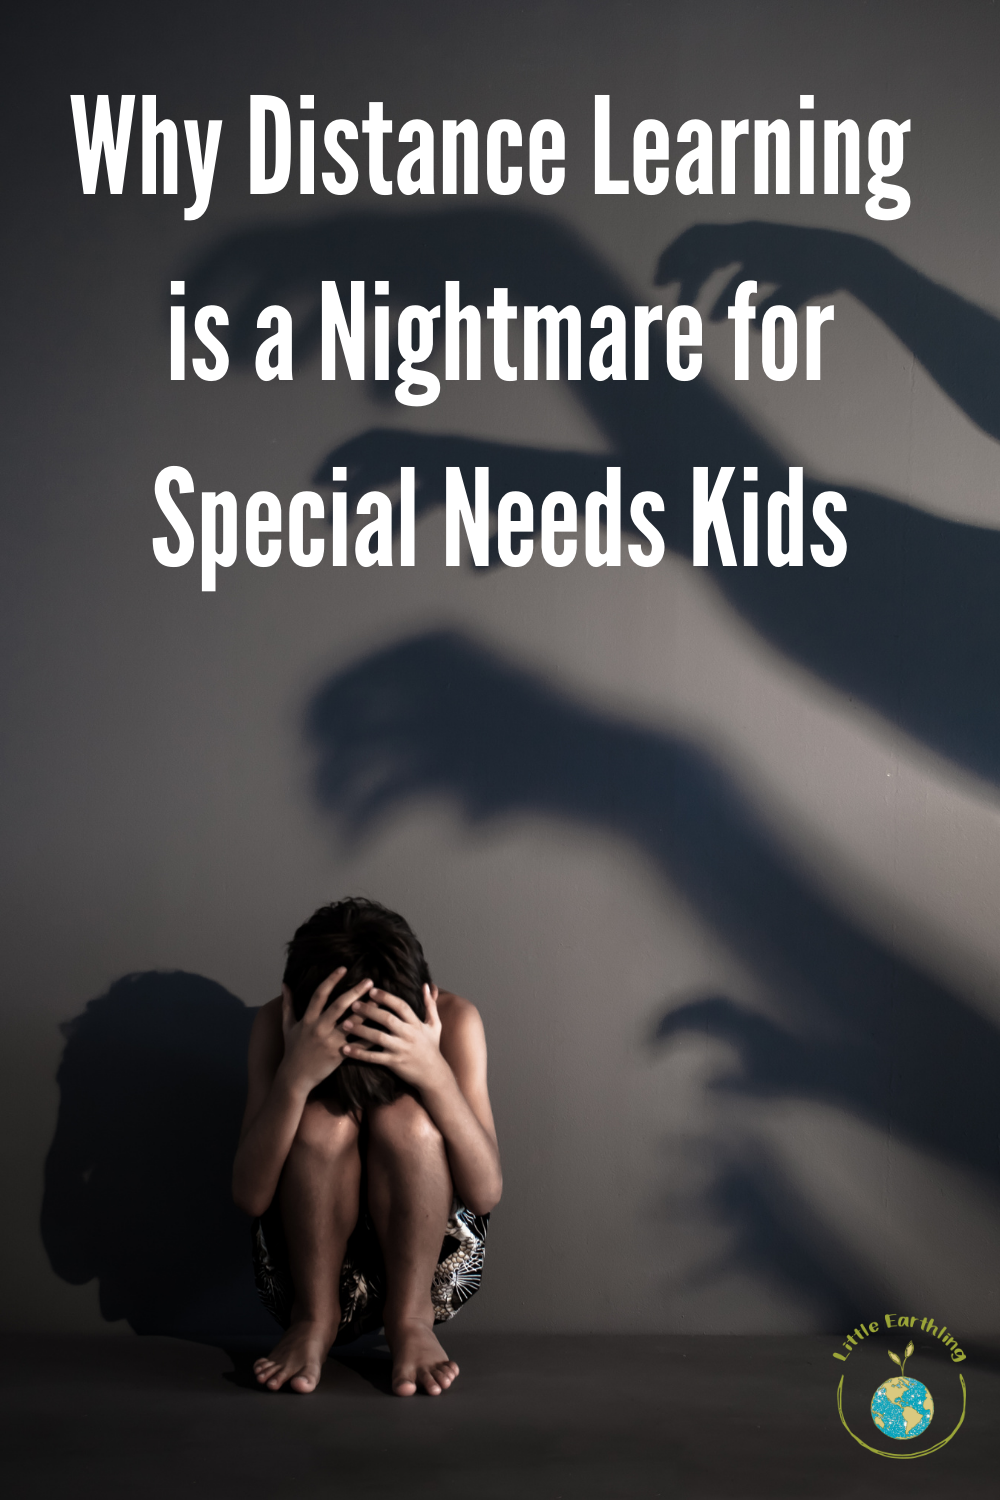 Why distance learning is a nightmare for special needs kids